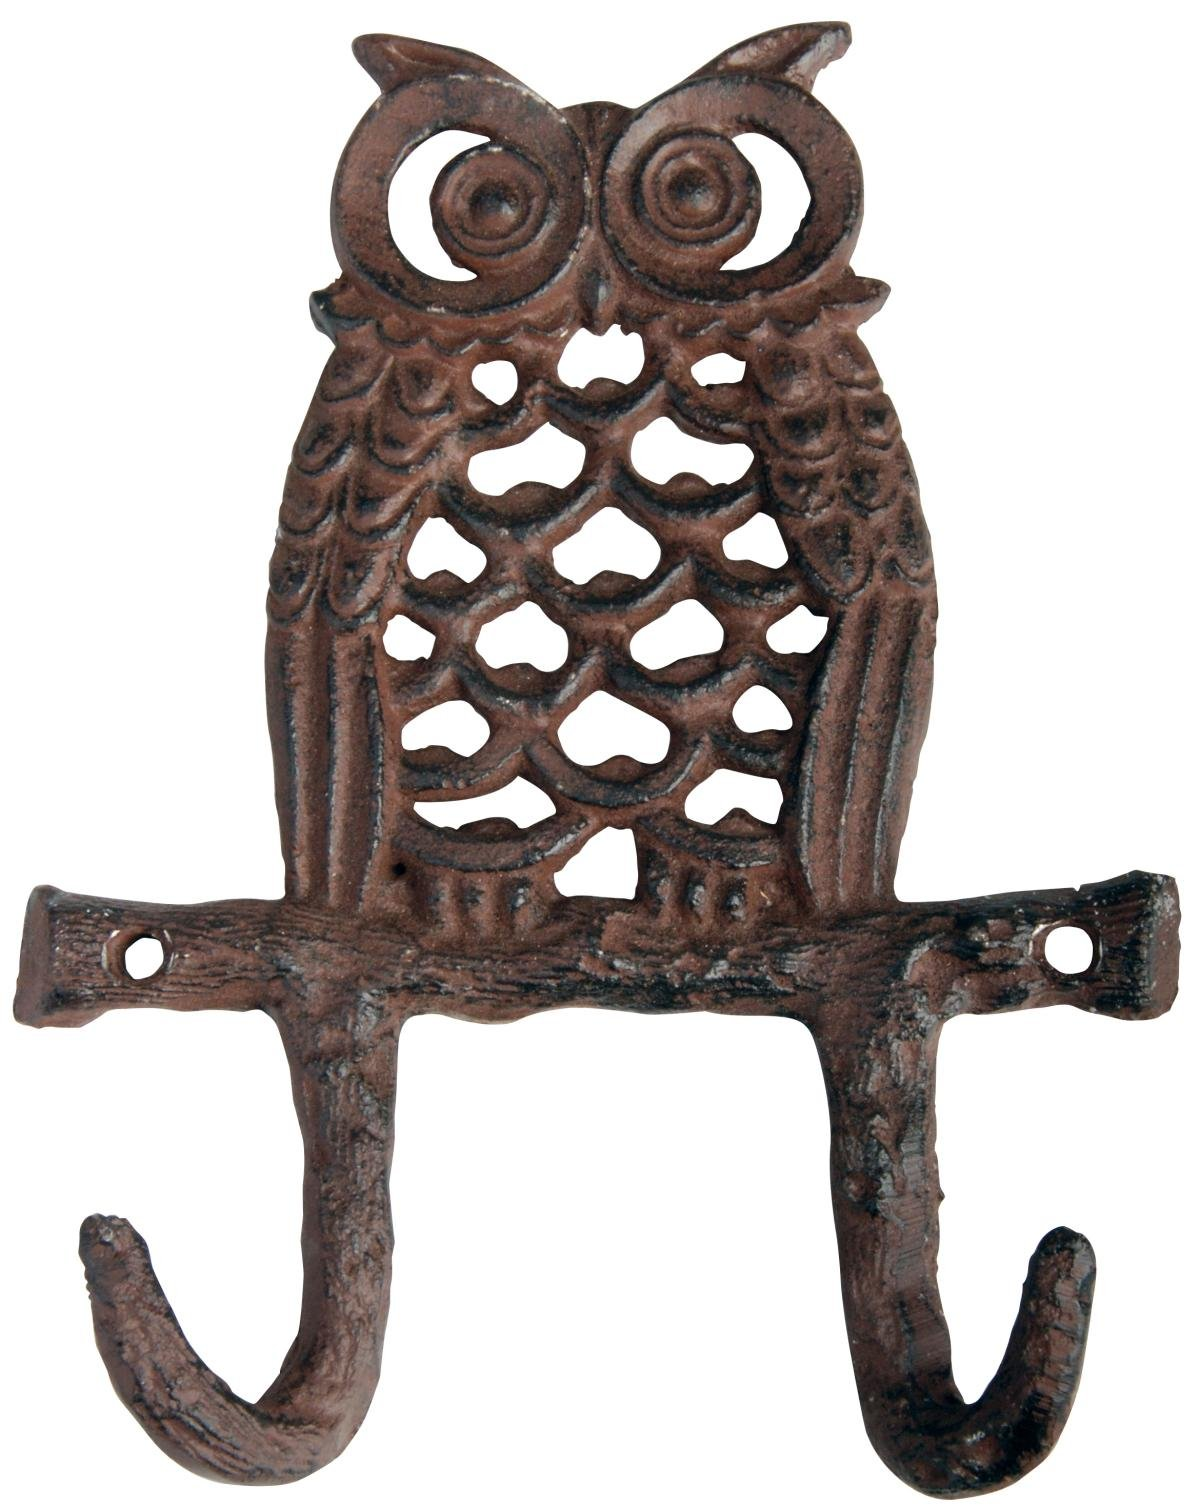 ABC Products'' - Primitive Heavy Cast Iron - Owl With Two Hooks - Owl Setting On a Tree Branch - Tree Branch Design Hooks (Wall Hung - Antique Rustic Bronze Finish - Body Designed With Widows)